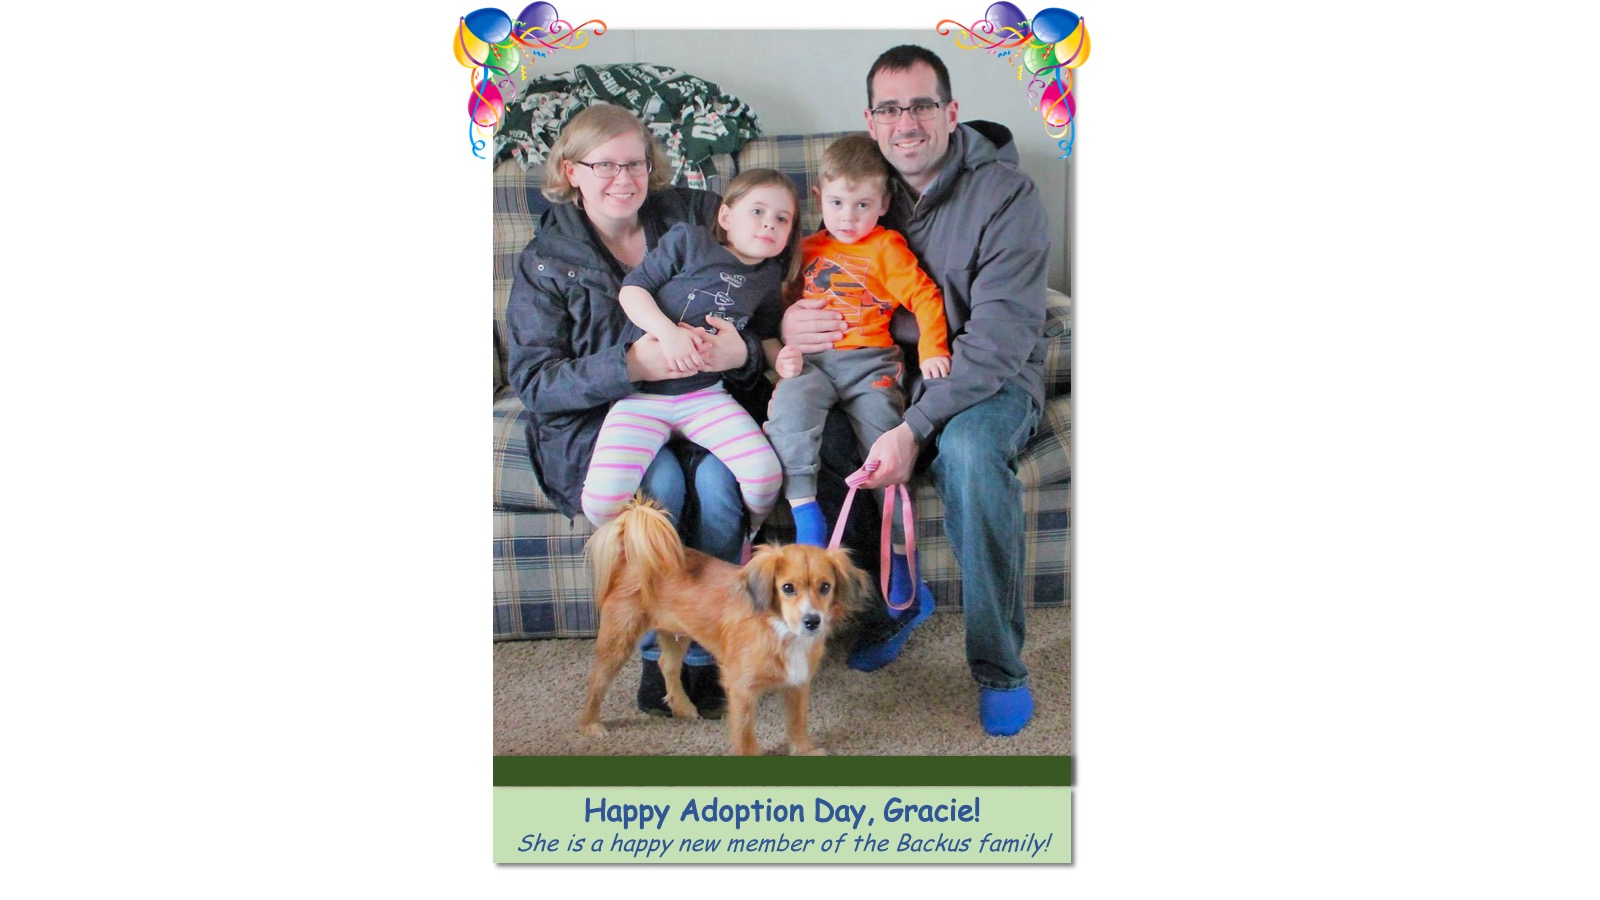 Gracie_Adoption_Photo_2018.jpg